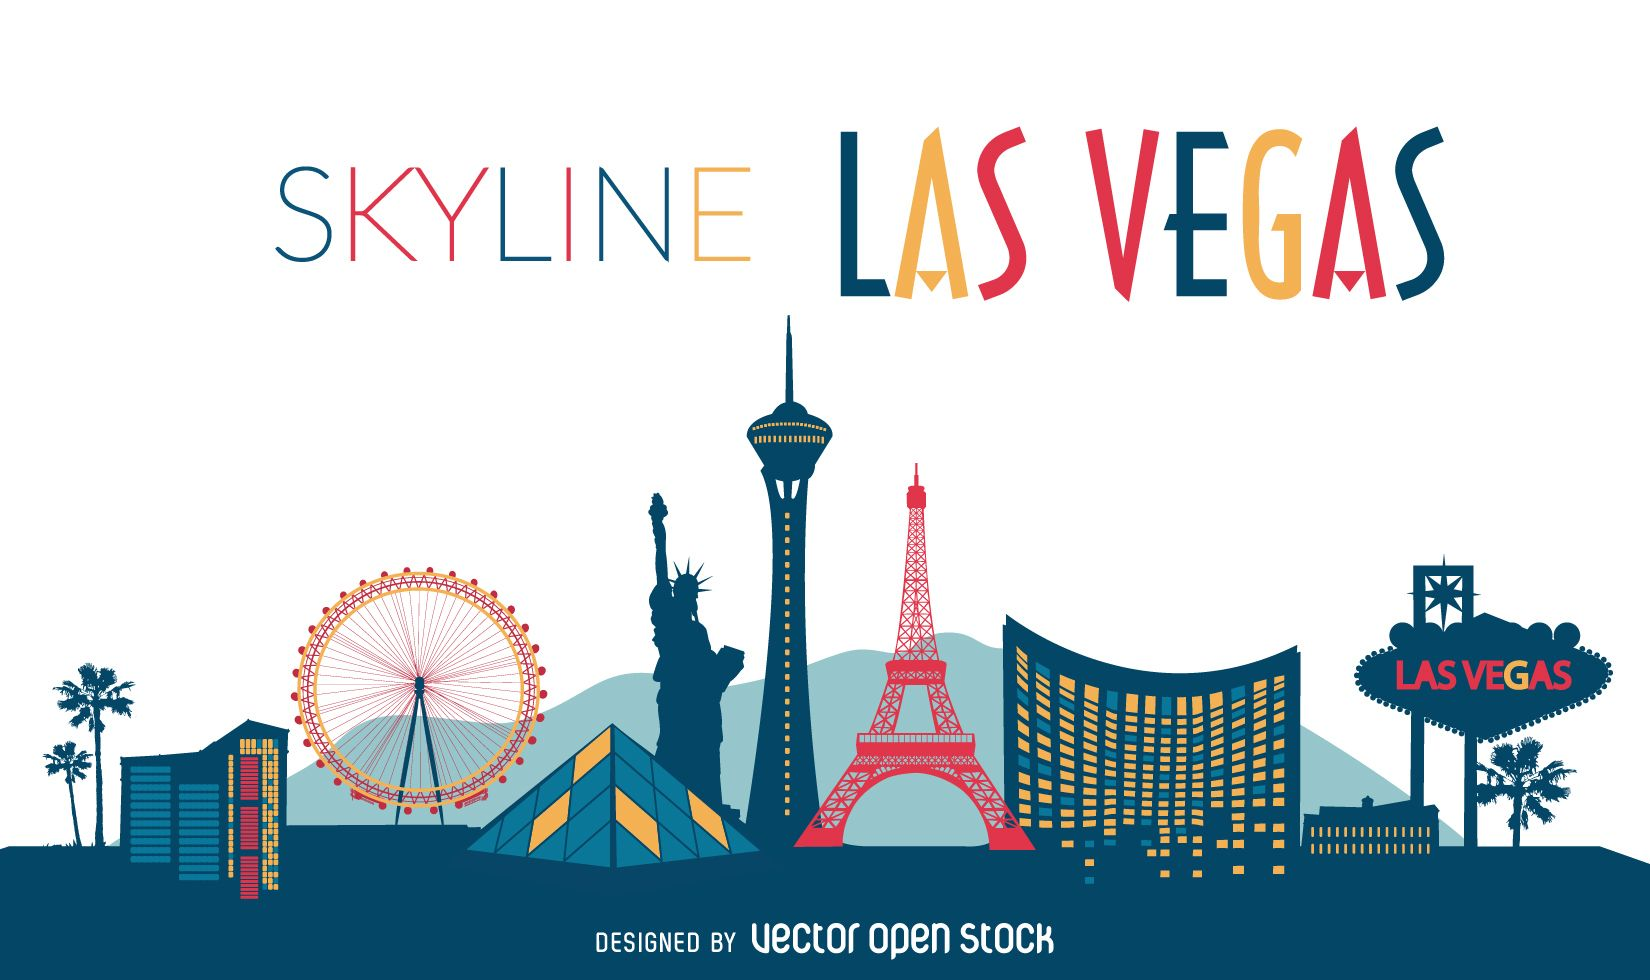 1650x980 Flat illustration featuring Las Vegas skyline with silhouettes of